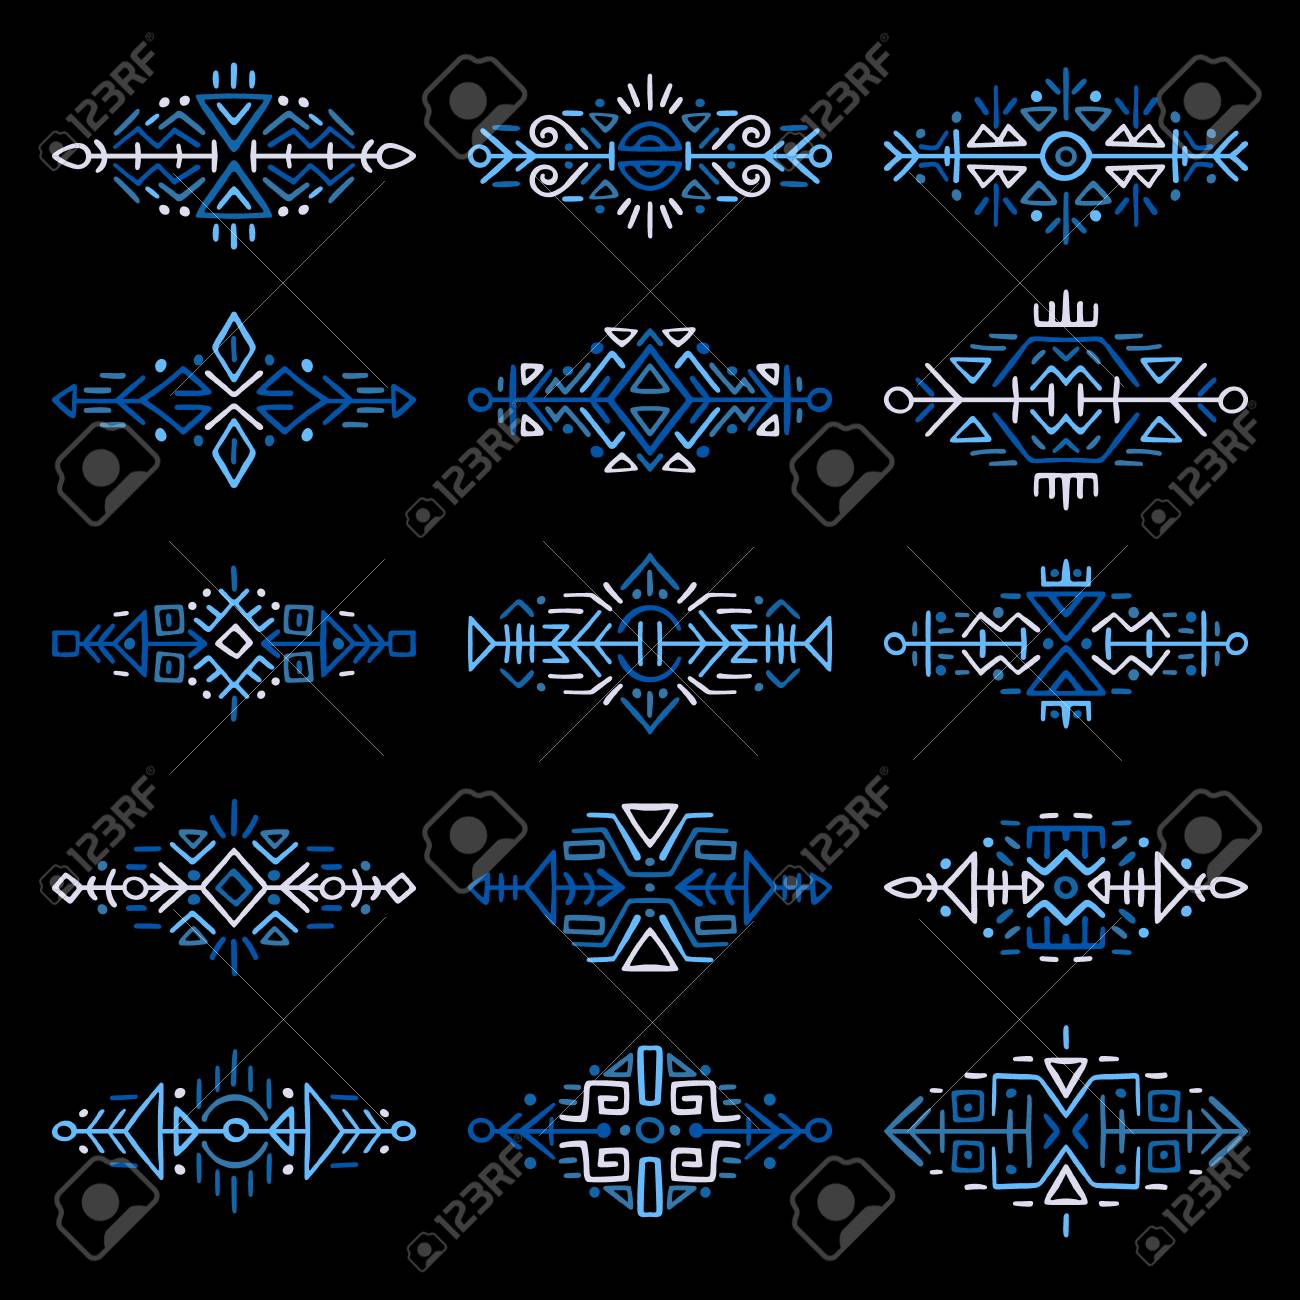 746368e9463d3 Collection of Hand Drawn Borders in Ethnic Style. Aztec art dividers.  Trendy boho separators